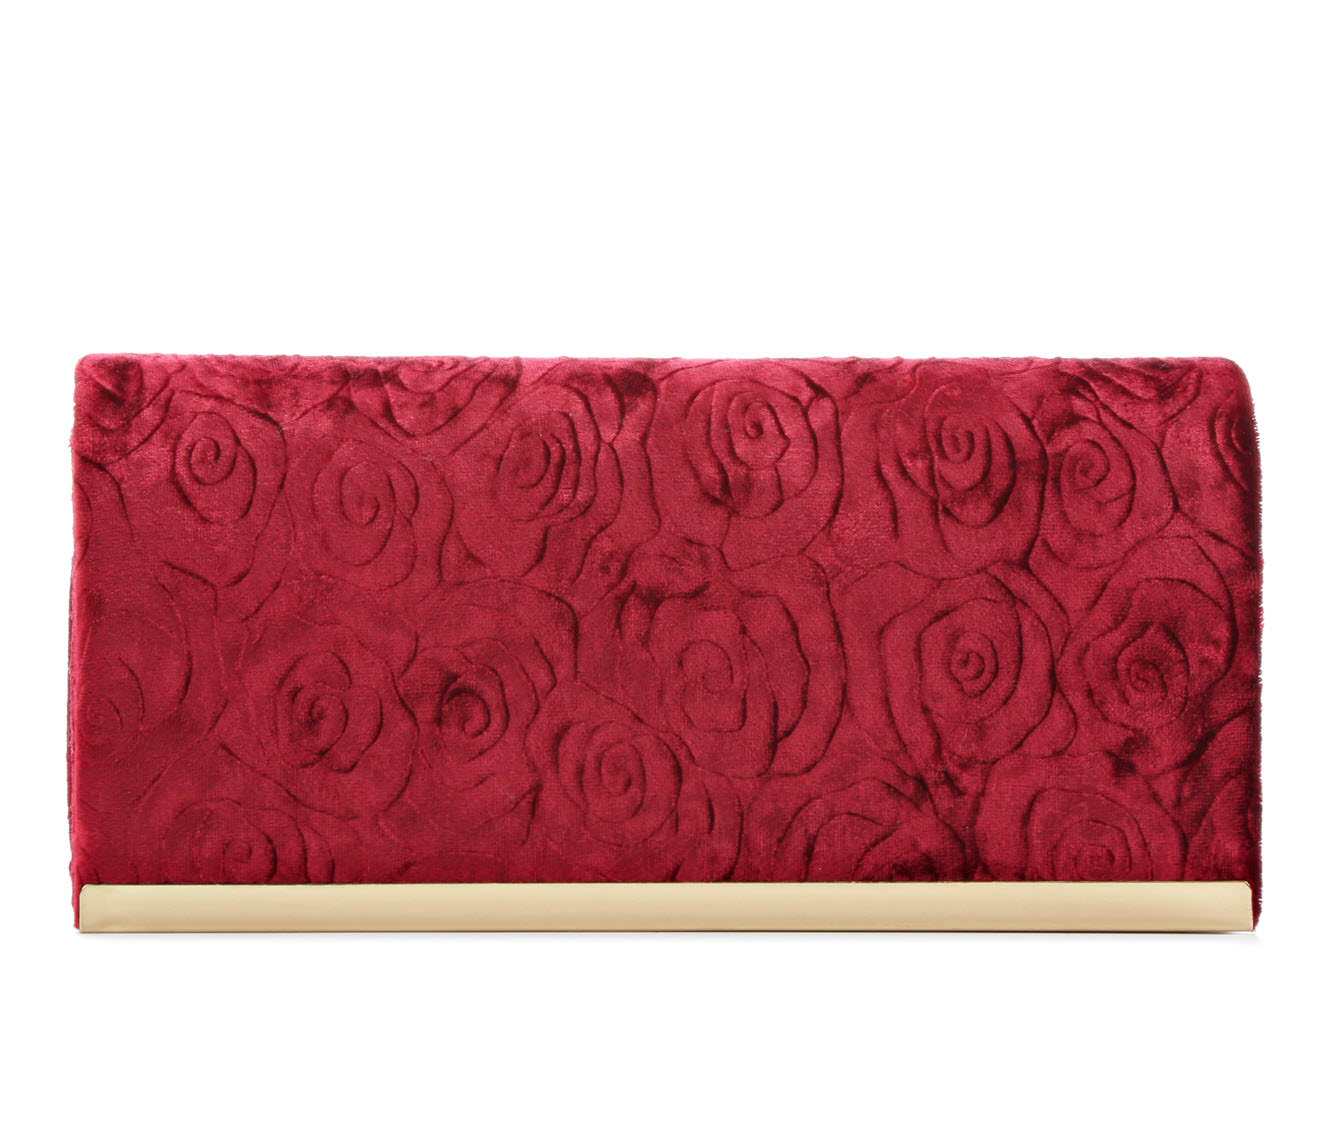 Four Seasons Handbags Velvet Embossed Evening Clutch (Red)